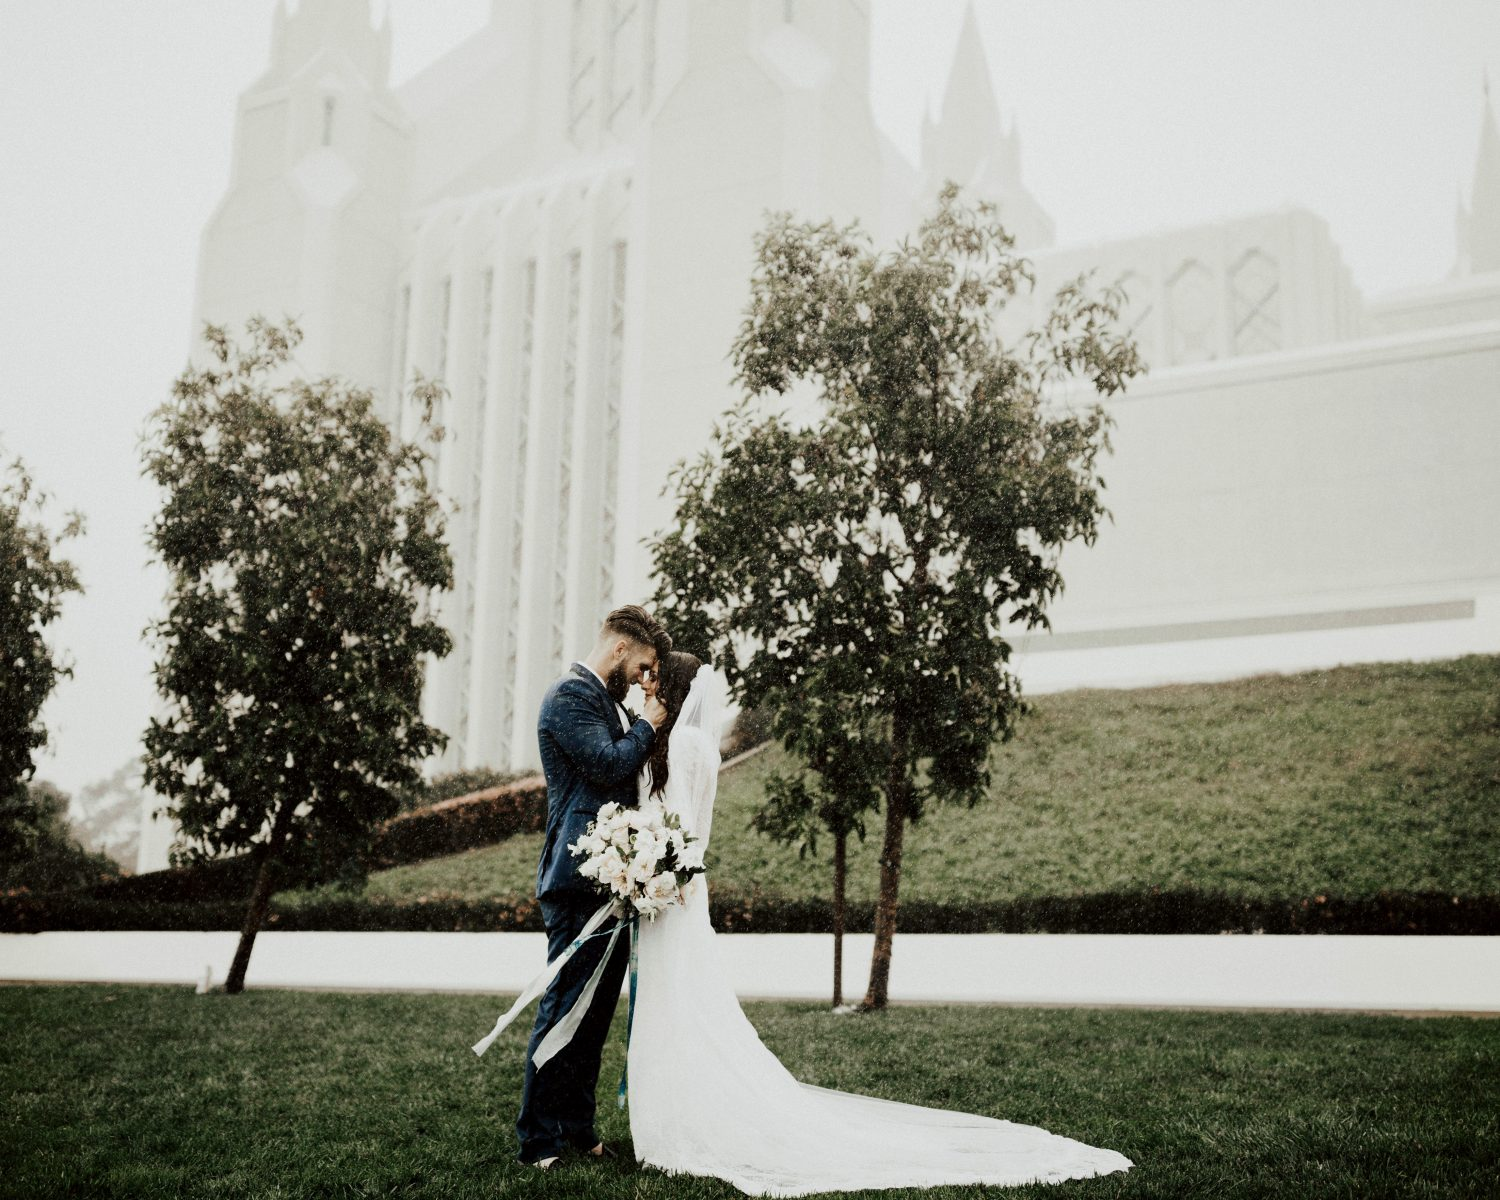 bryce harper�s wedding tuxedo was lined with fiancees photos